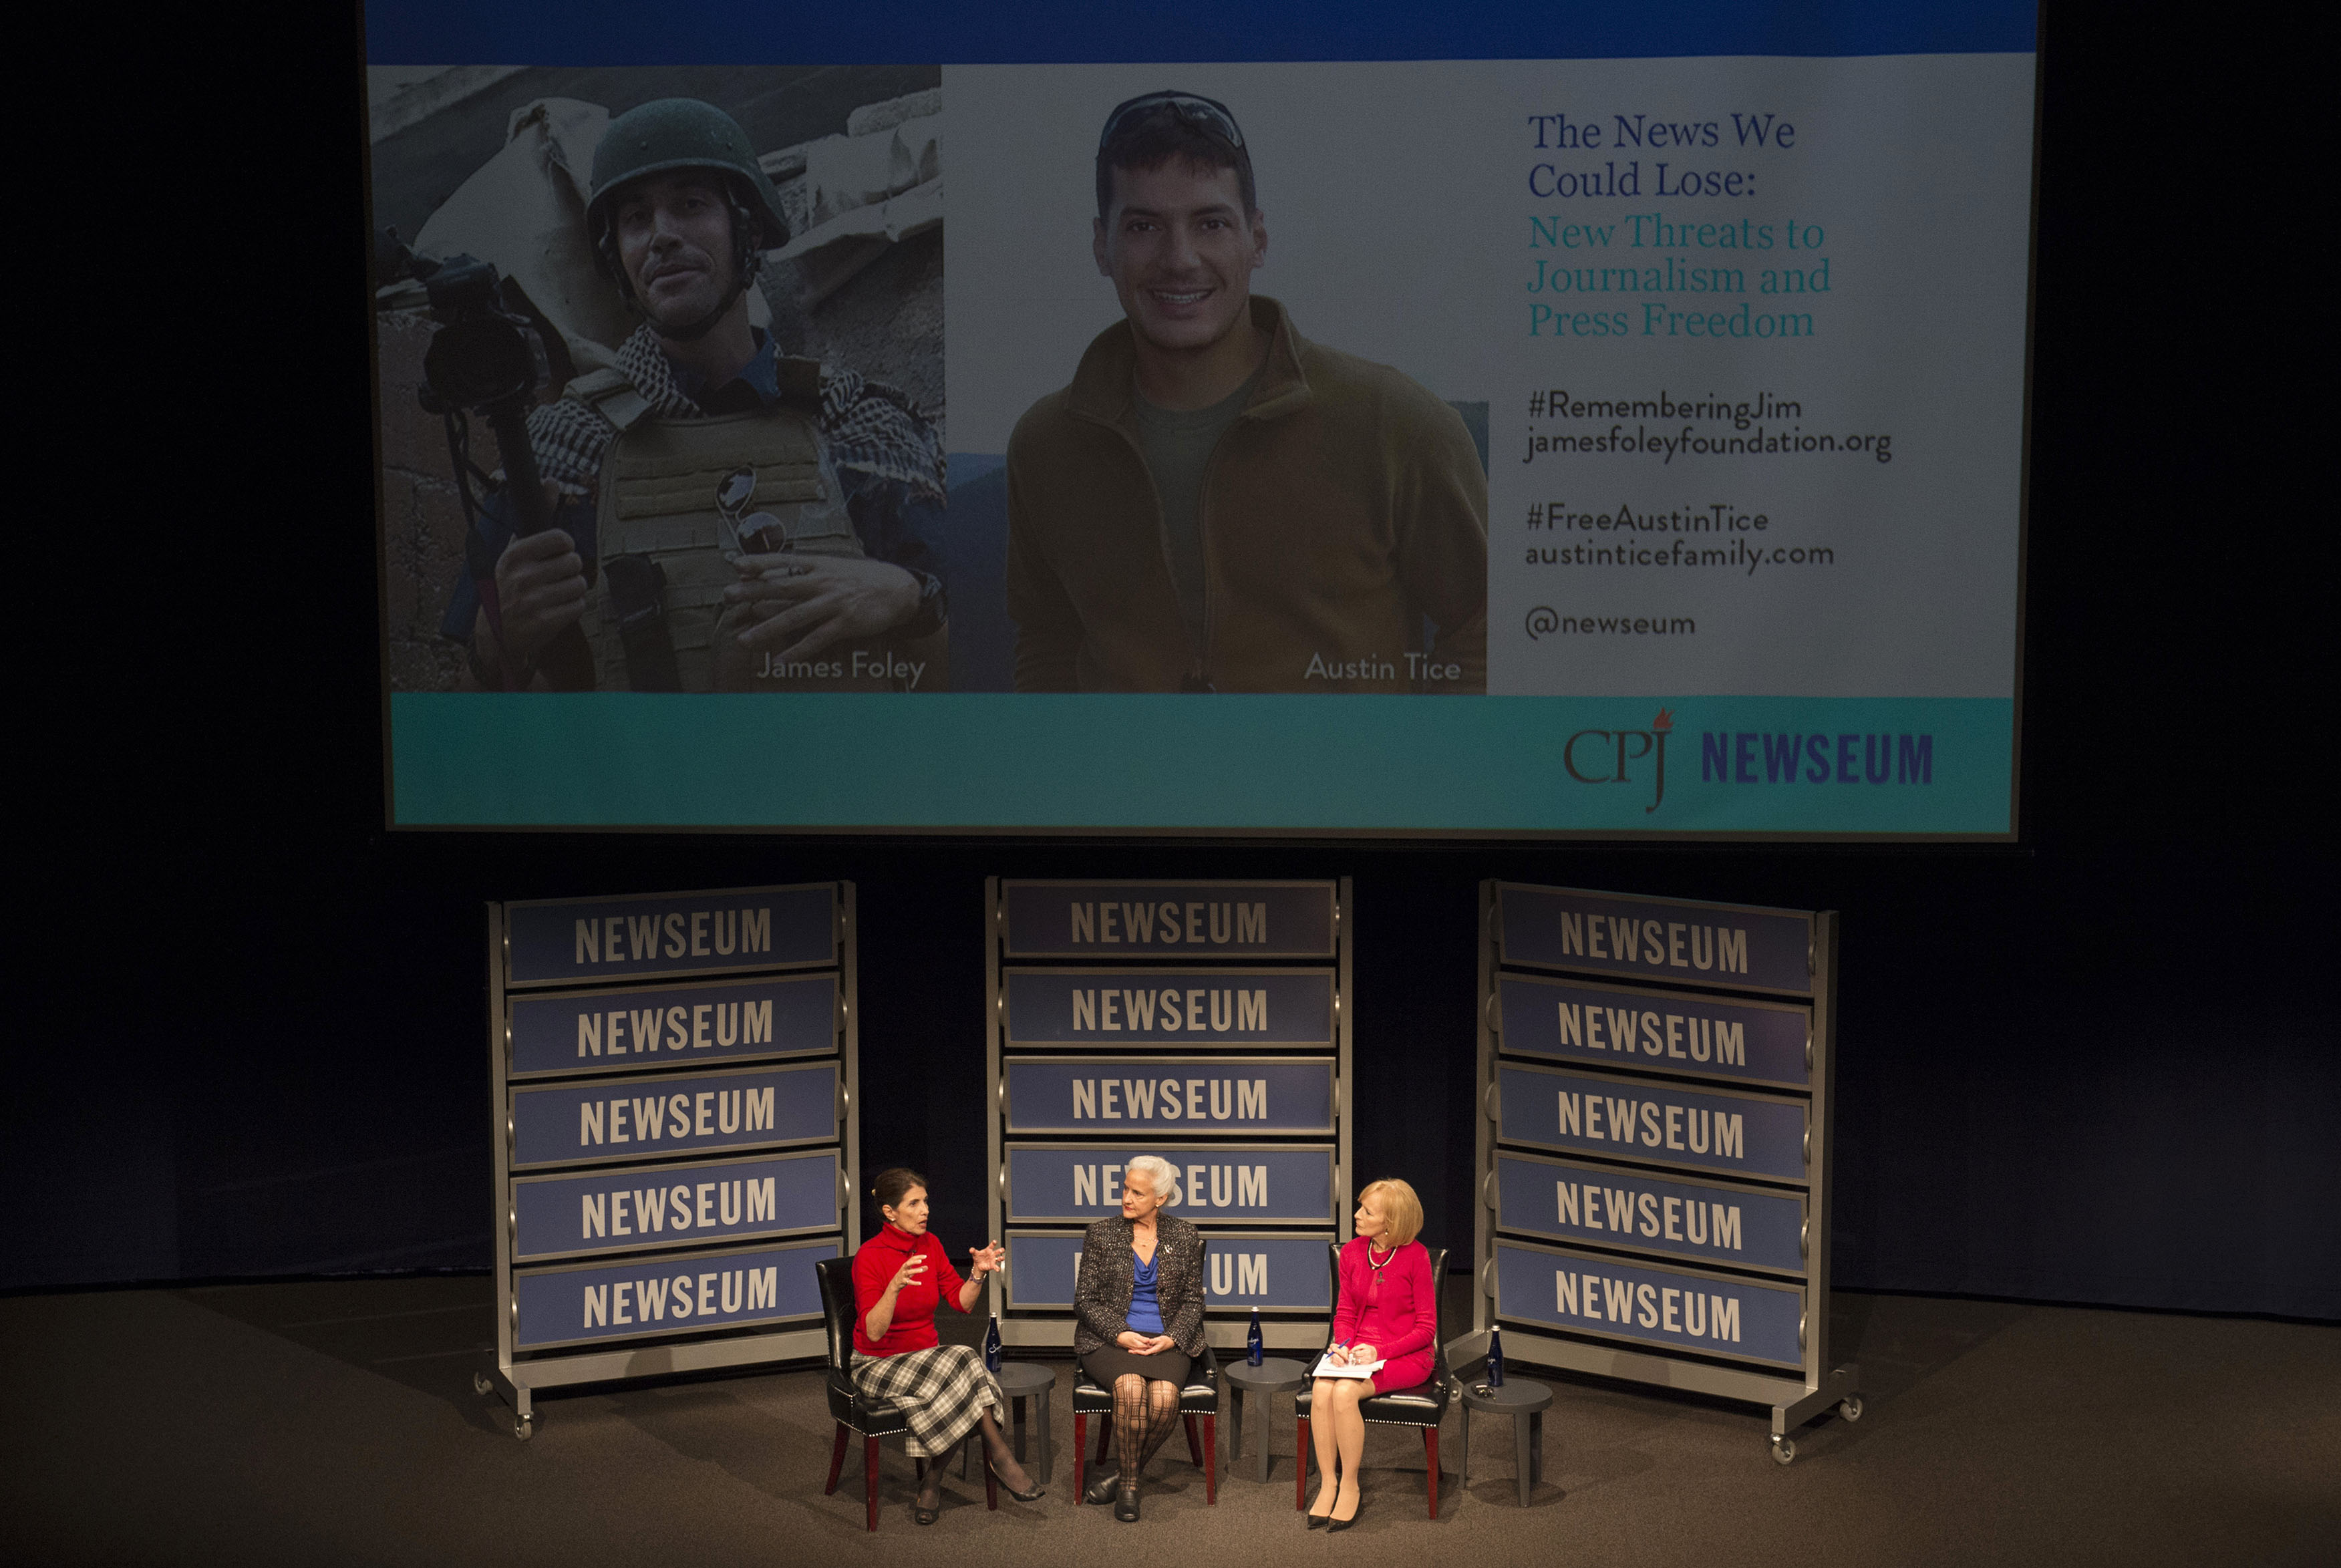 Diane Foley, left, mother of James Foley, the photojournalist killed by Islamic State militants in 2014, and Debra Tice, mother of freelance journalist Austin Tice, who has been missing since he was taken captive in Syria in 2012, take part in a forum at the Newseum in Washington on February 4, 2015. (AP/Molly Riley)